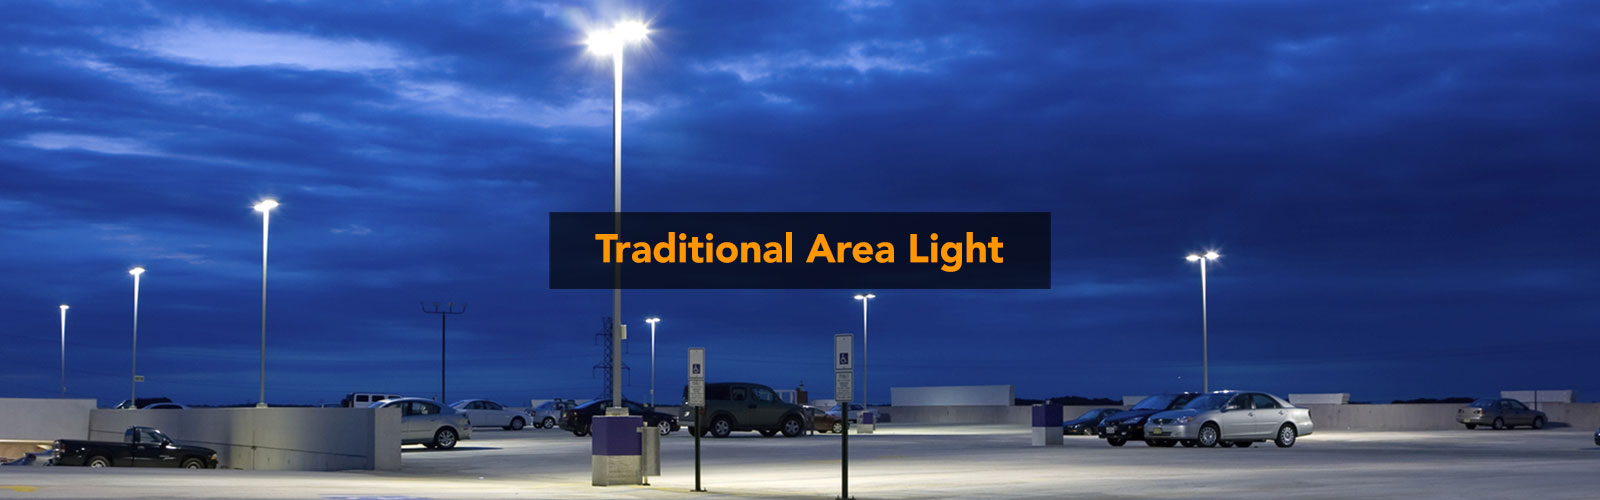 Traditional Area Light